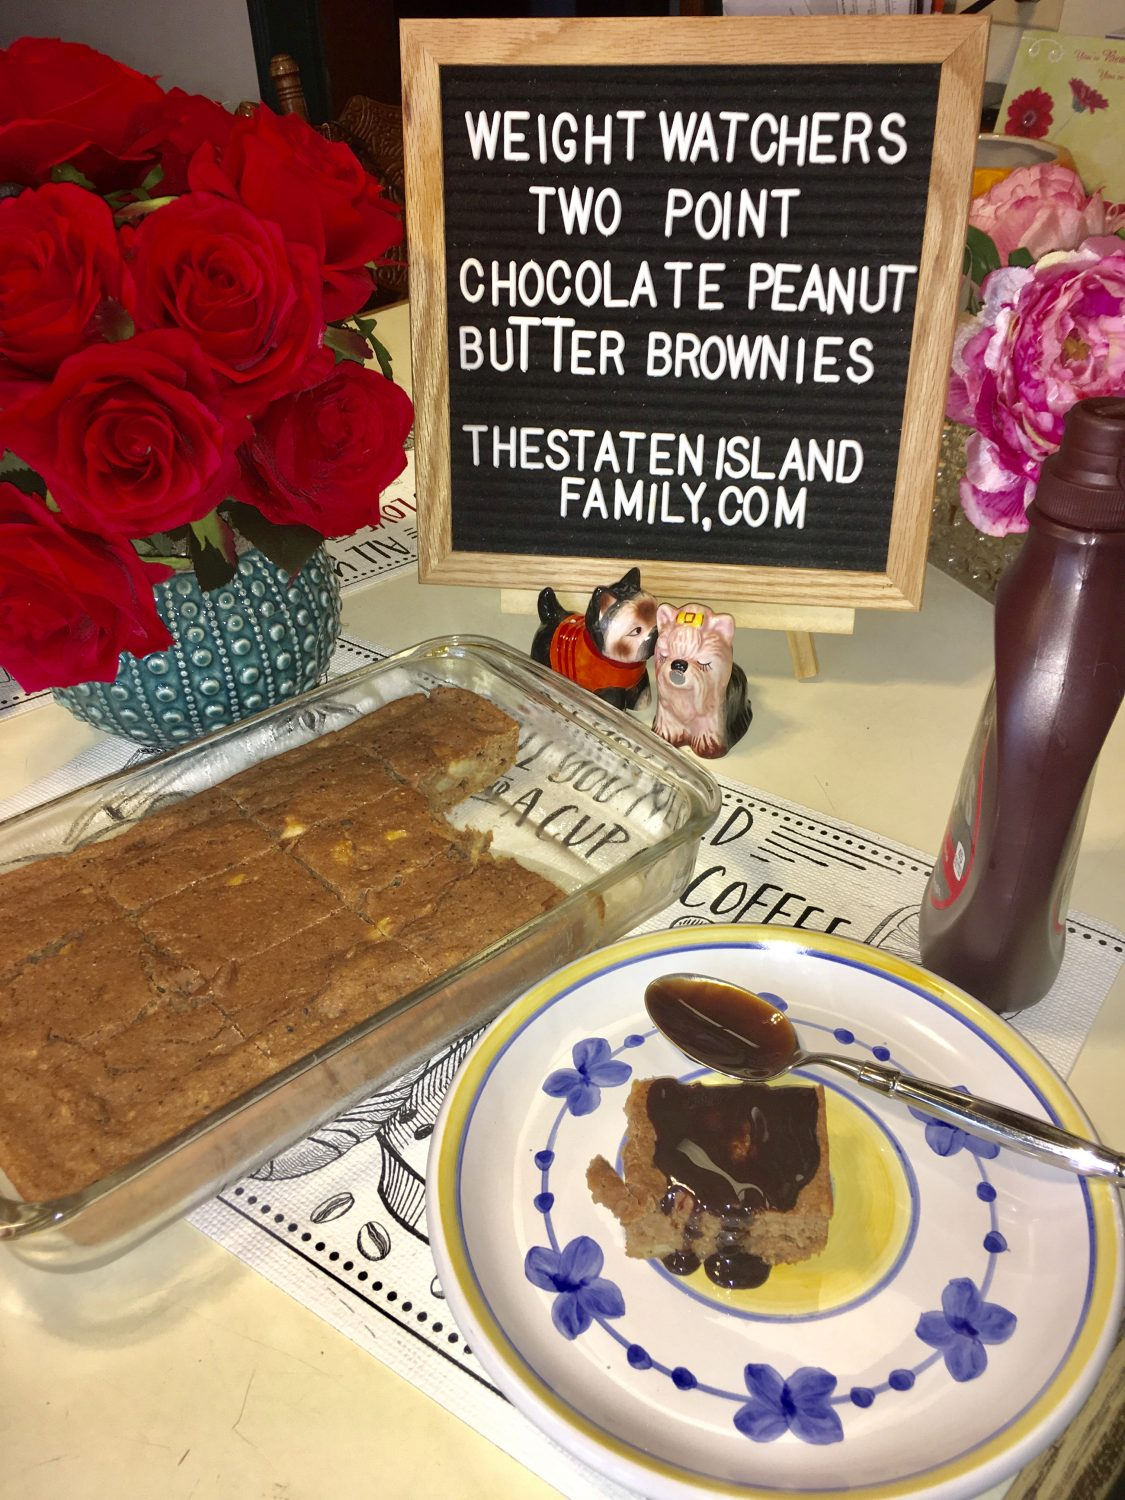 Weight Watchers Two Point Chocolate Peanut Butter Brownies